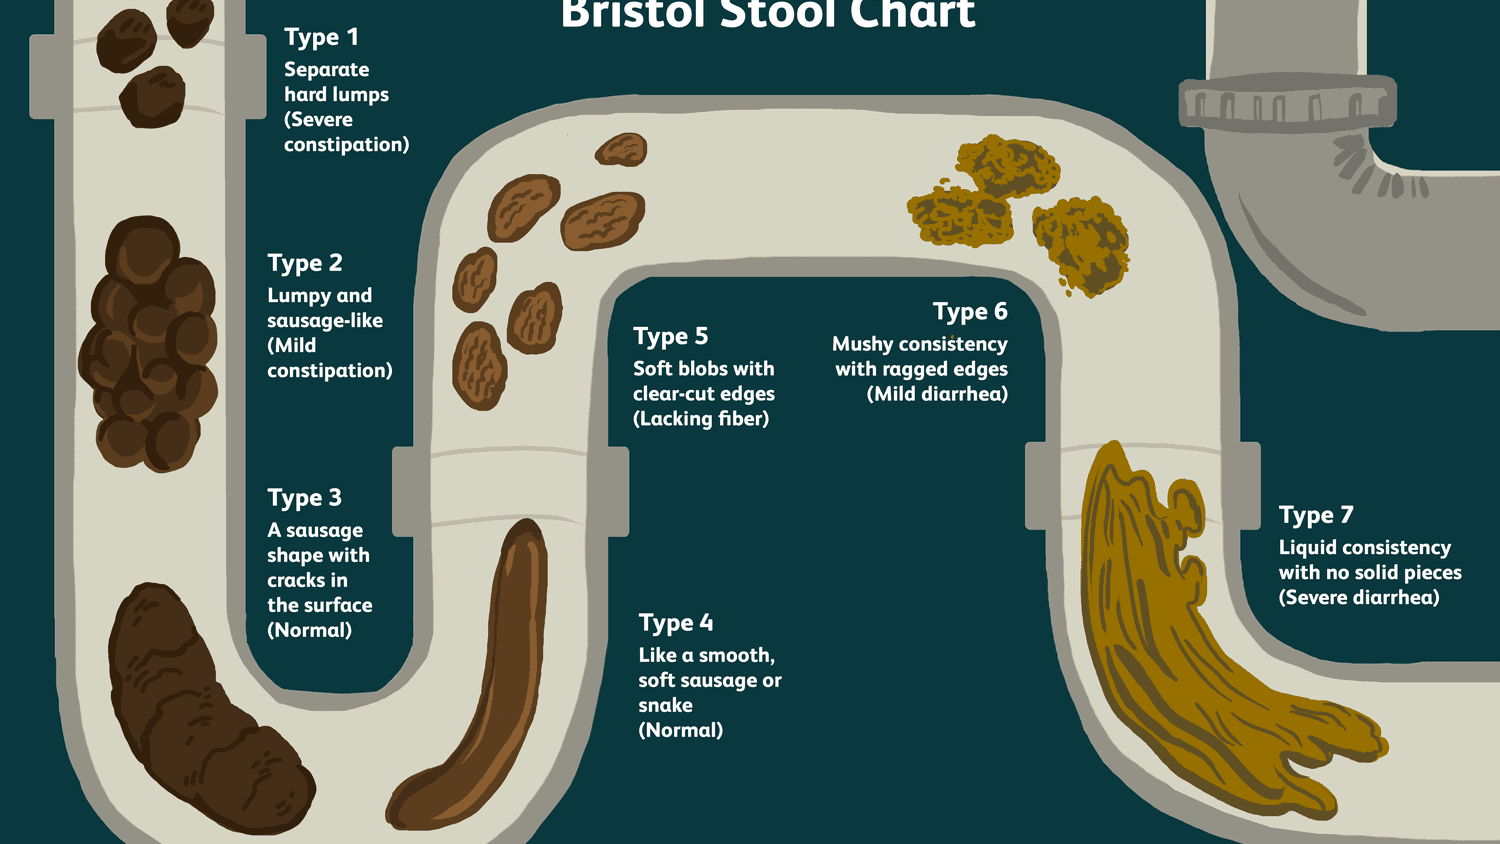 An Overview Of The Bristol Stool Chart